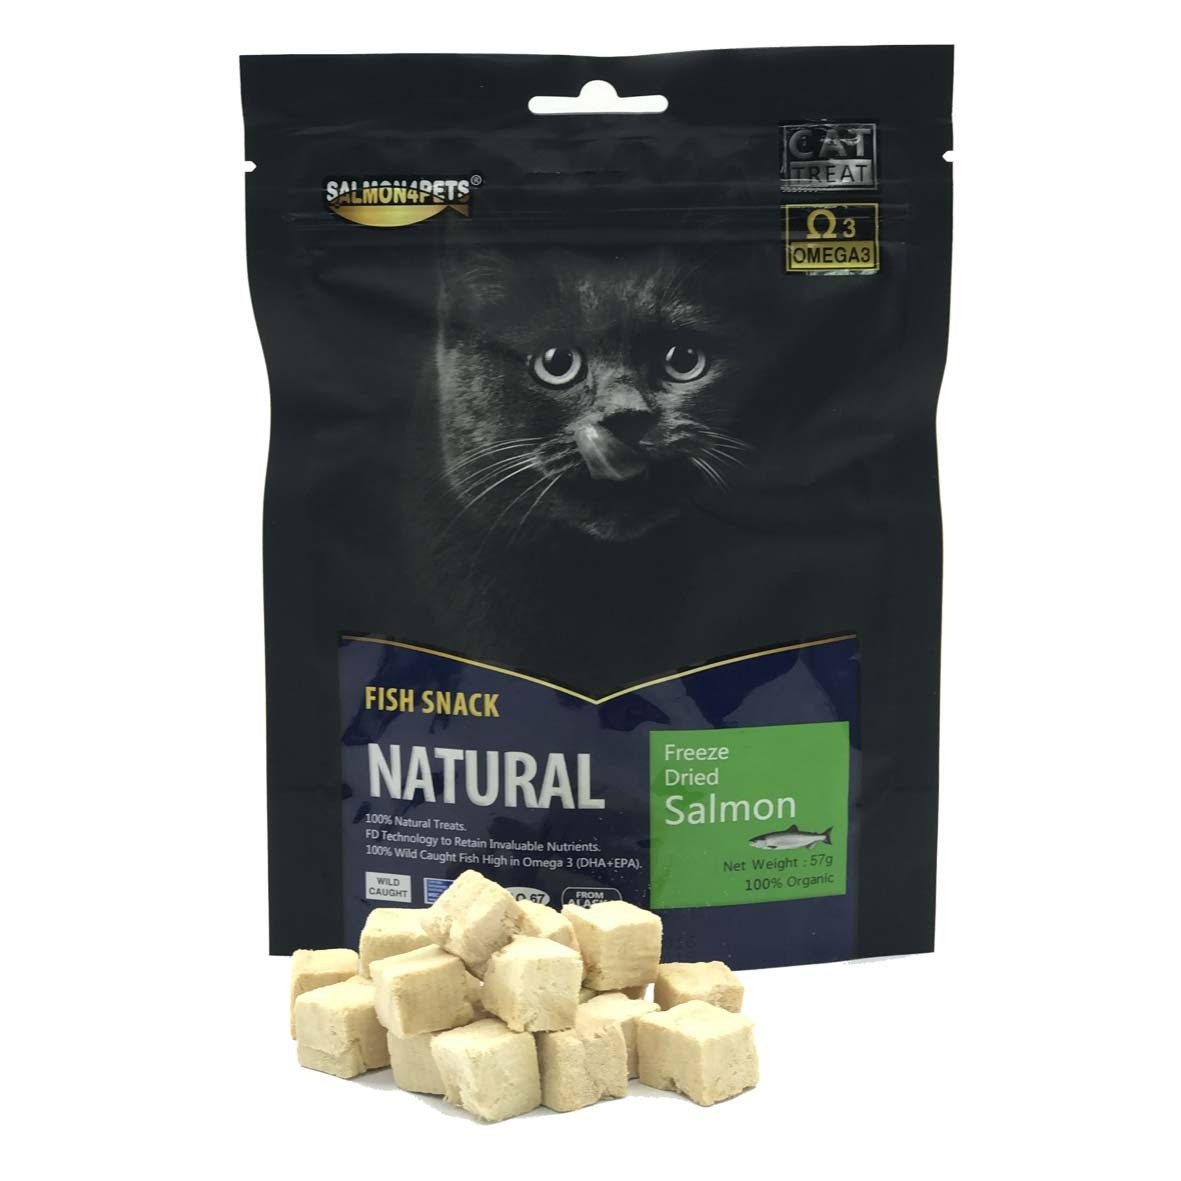 Salmon4Pets Cat Treats Freeze Dried Salmon - 57g (F51008)